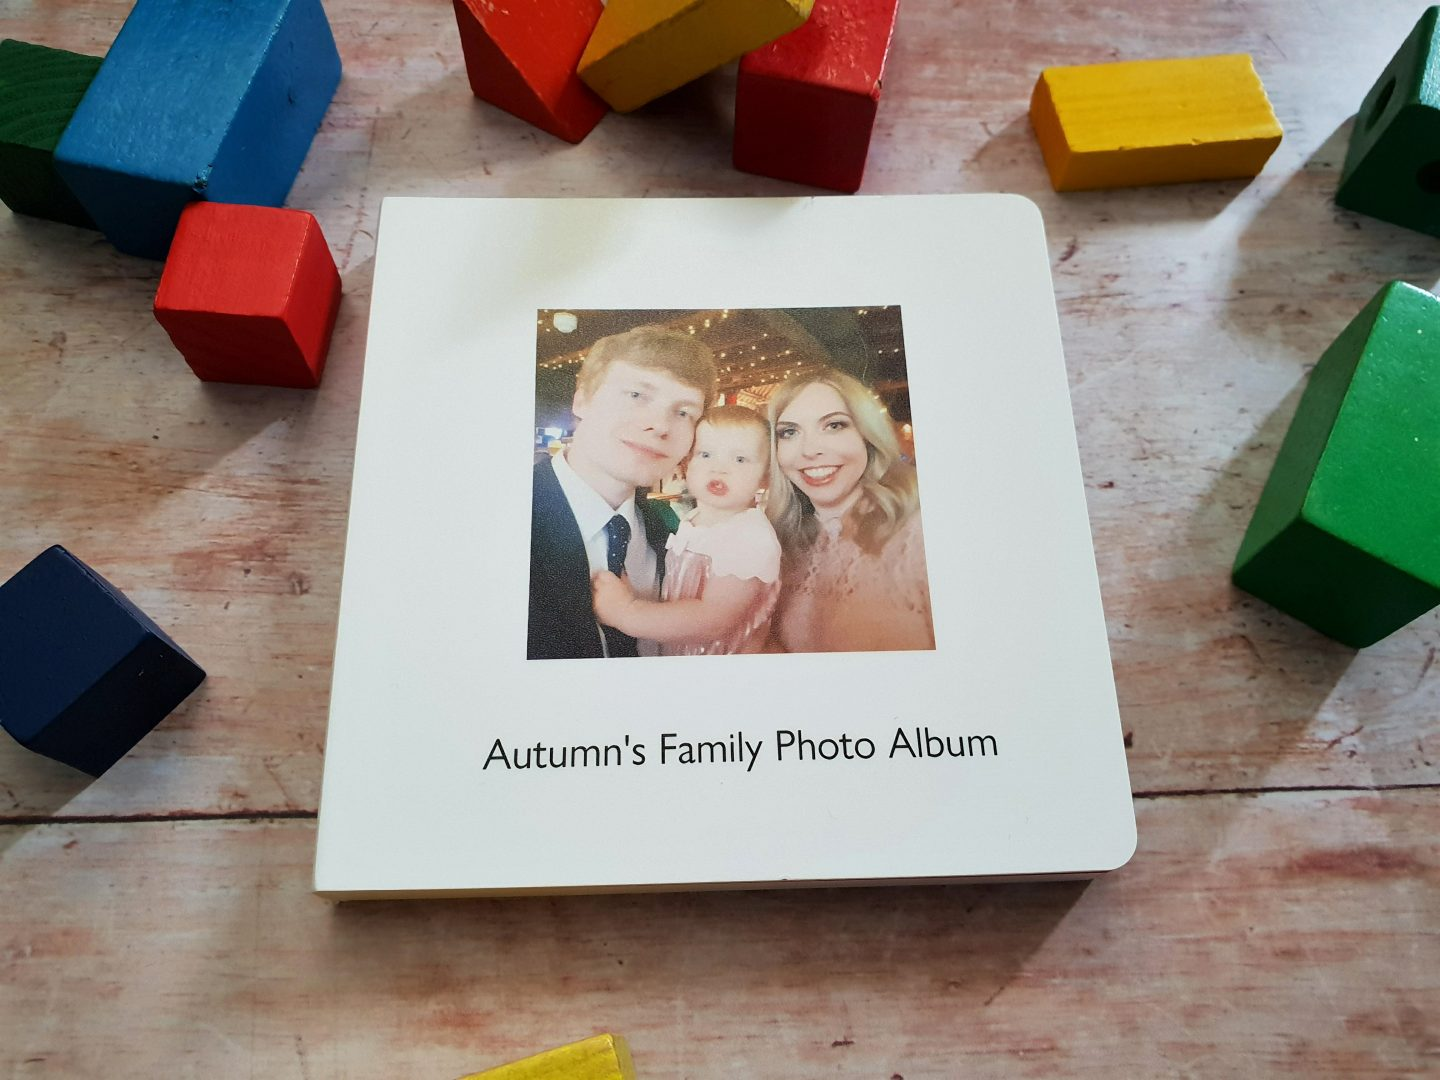 My first photo book family album from Photo Box